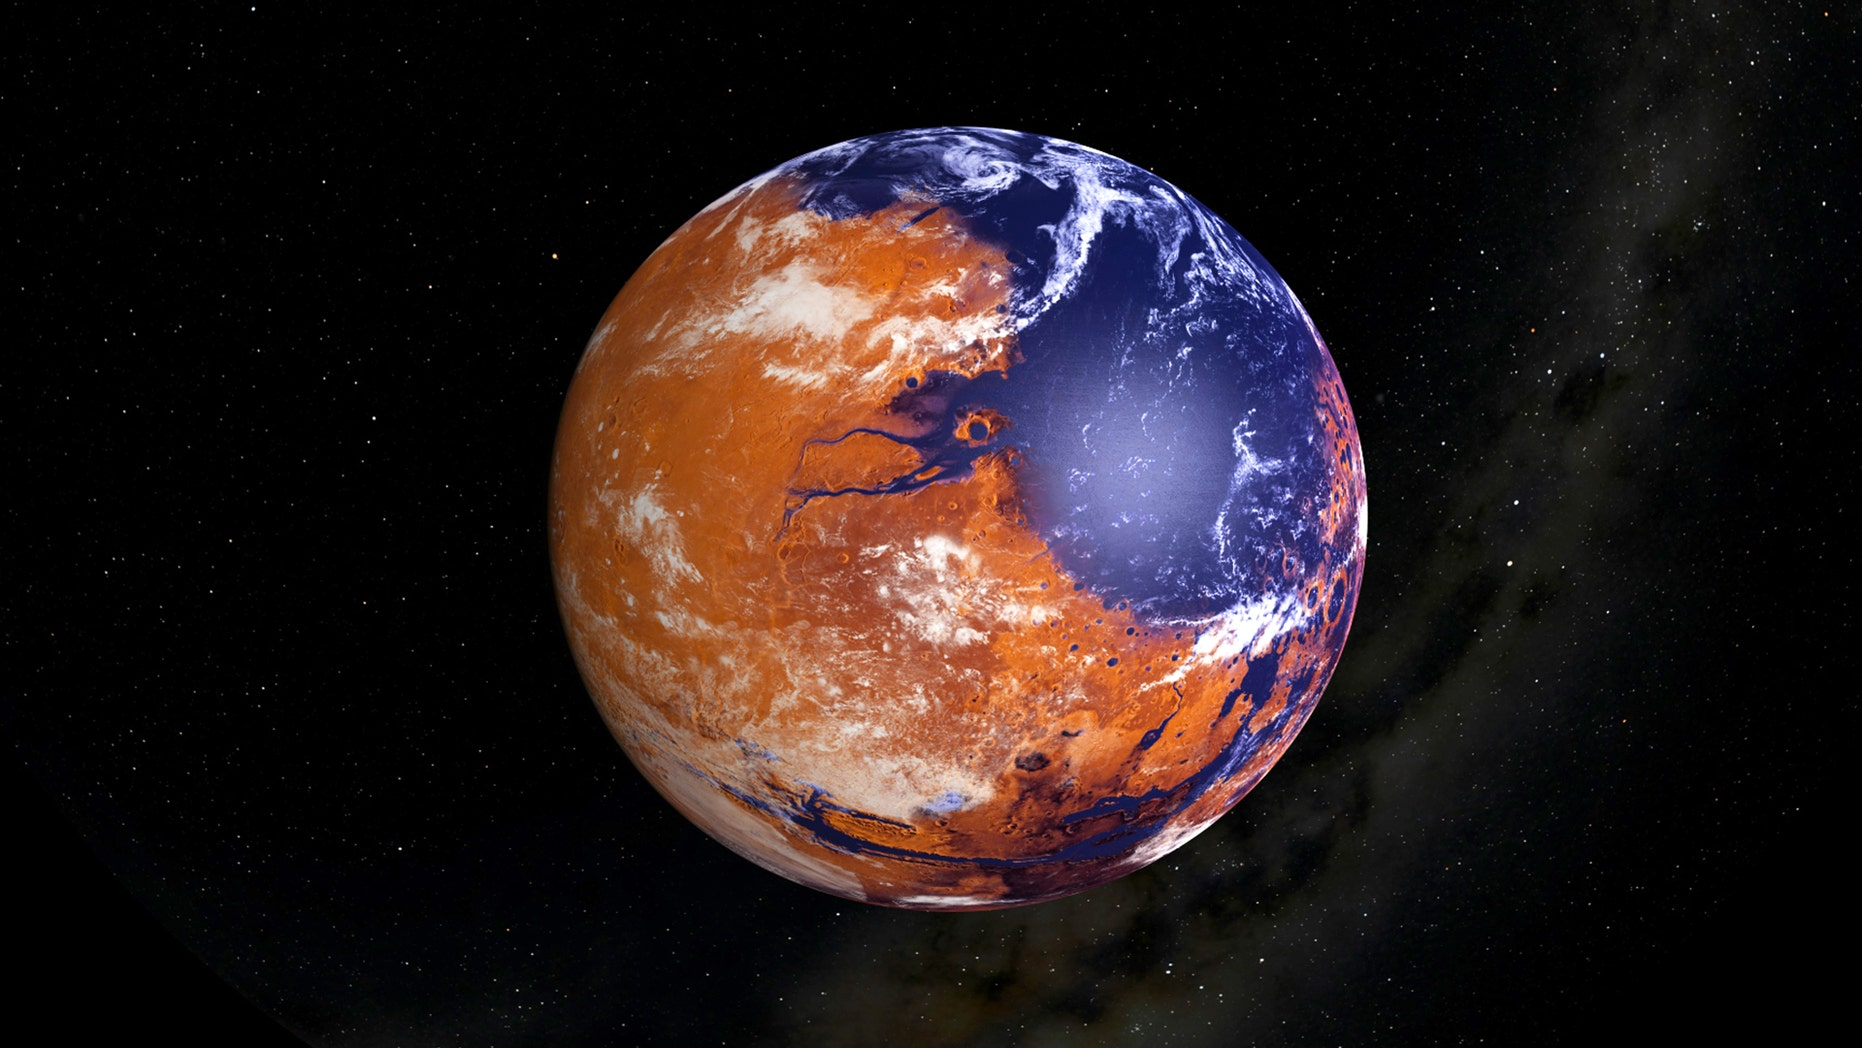 A wet Mars could have started off near the orbit of Venus before gravitational interactions early in its life drove the Red Planet out to its current orbit.